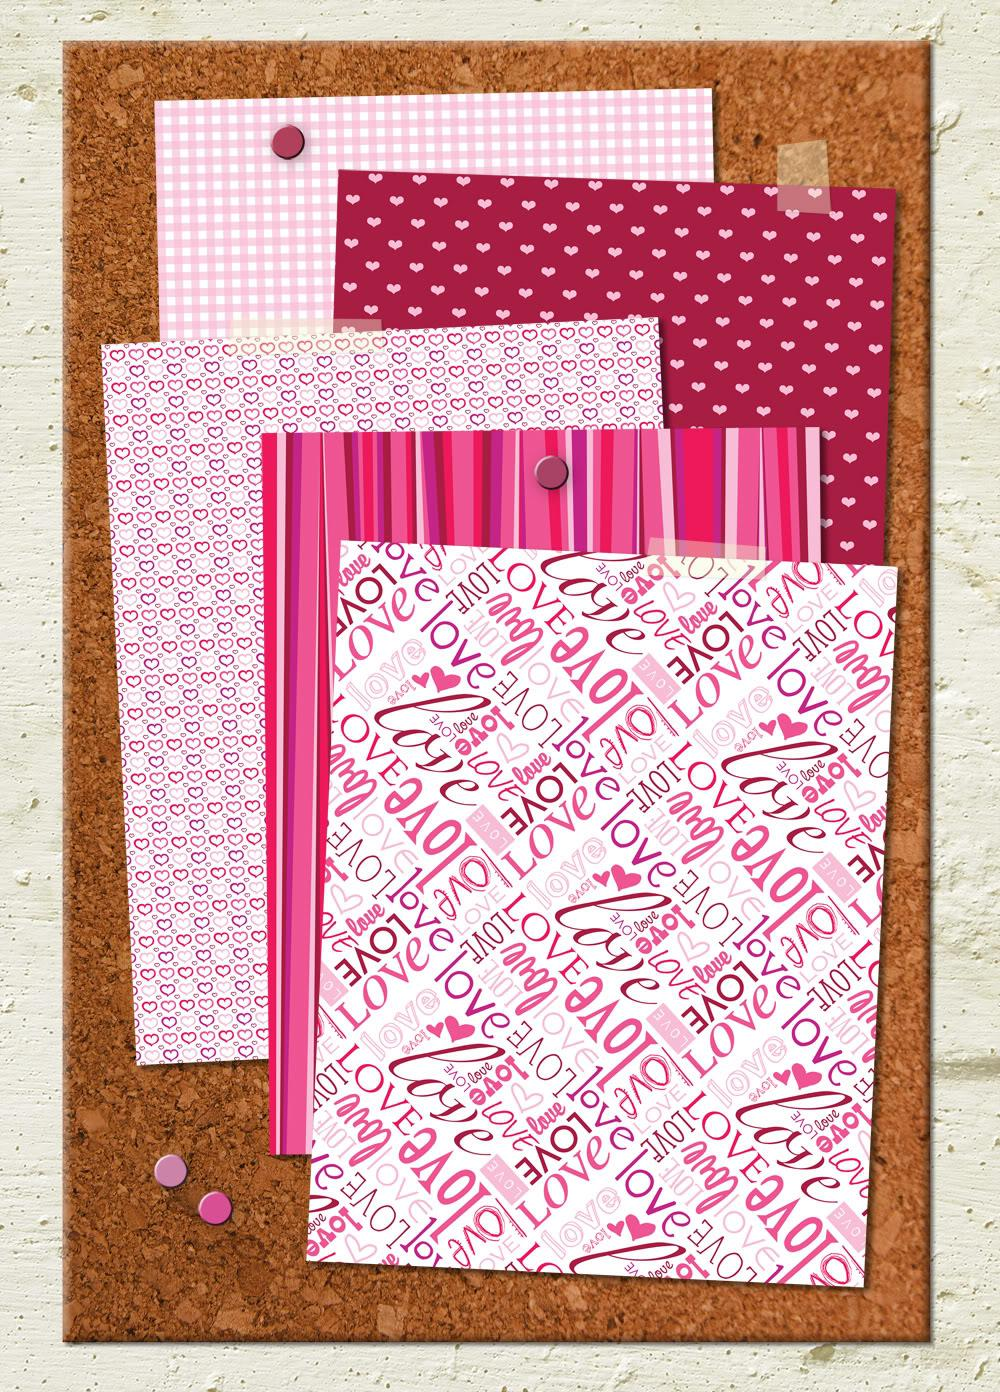 simply designed and etsy finds.: Sharing the Love.